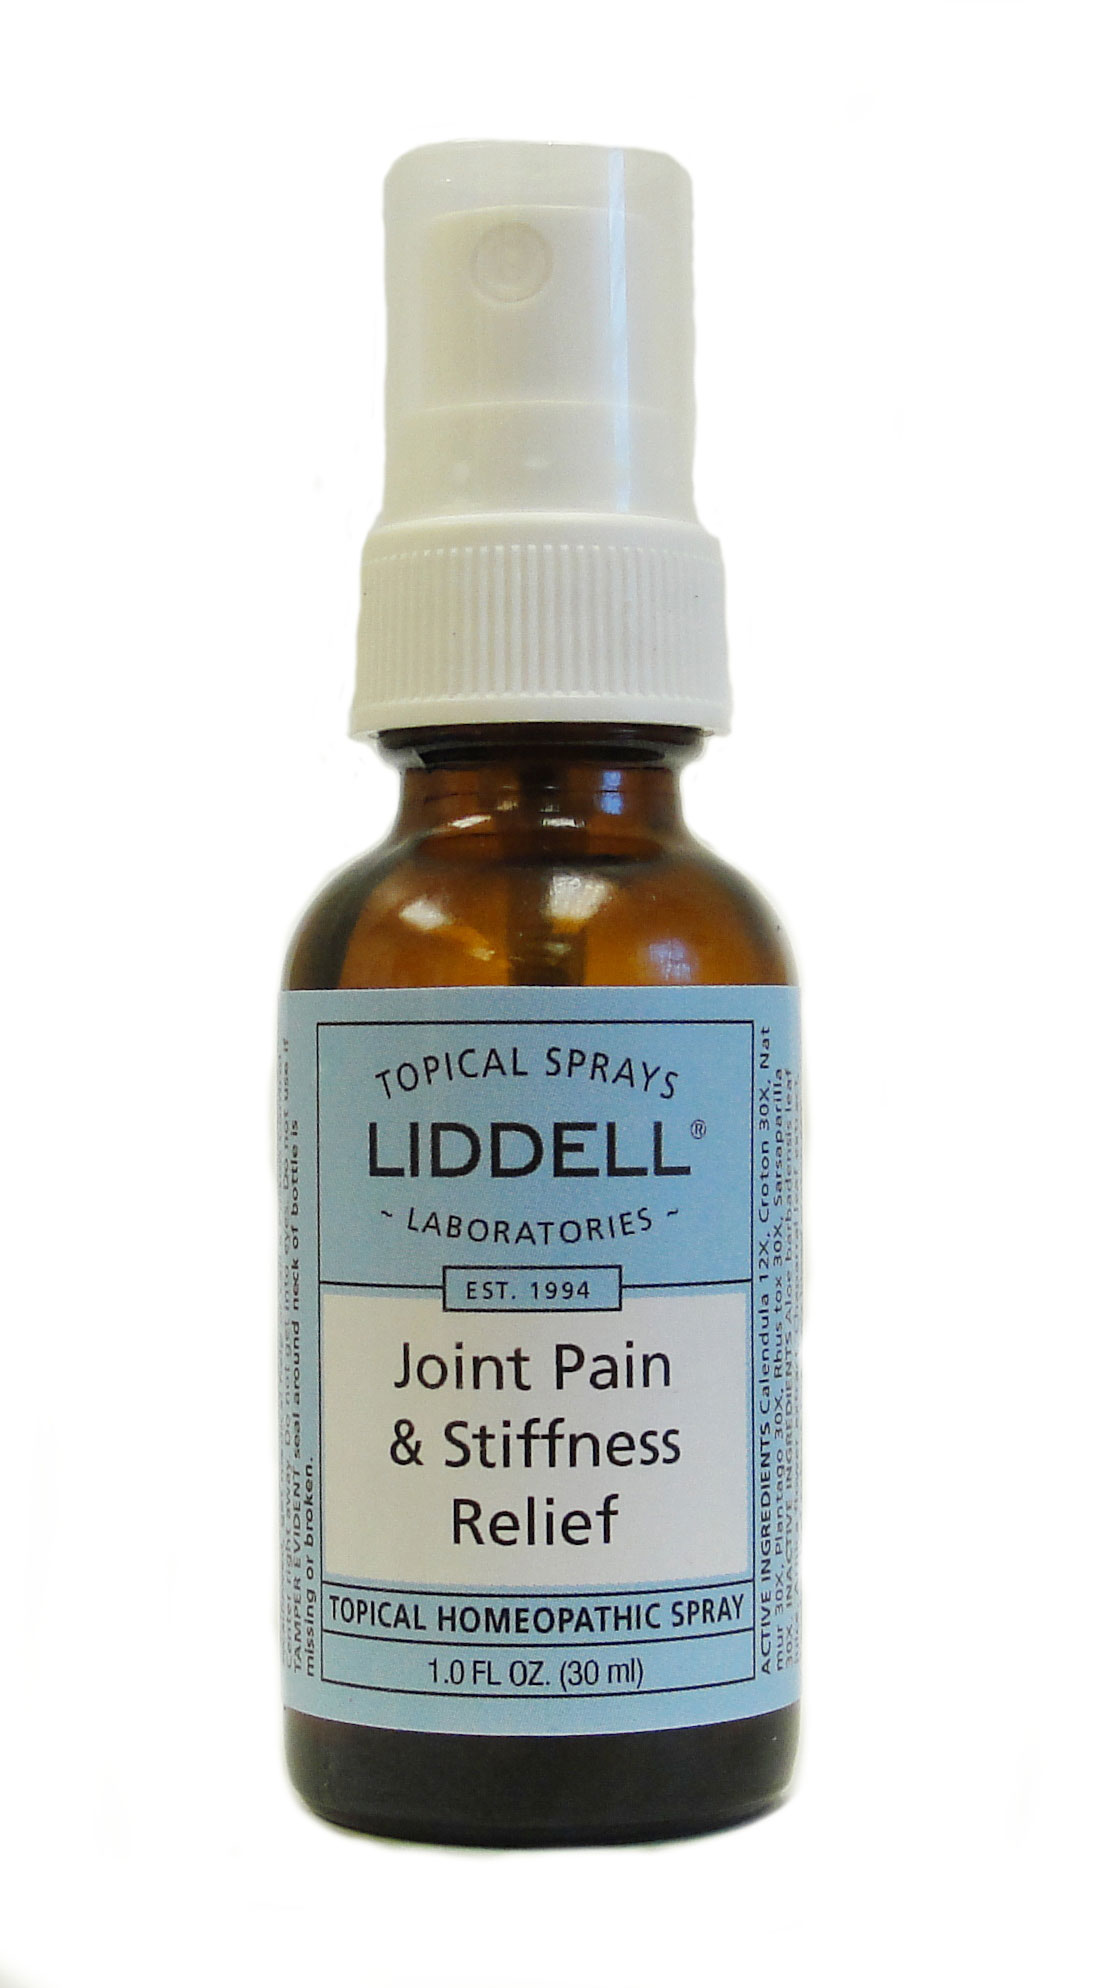 Joint Pain & Stiffness Relief